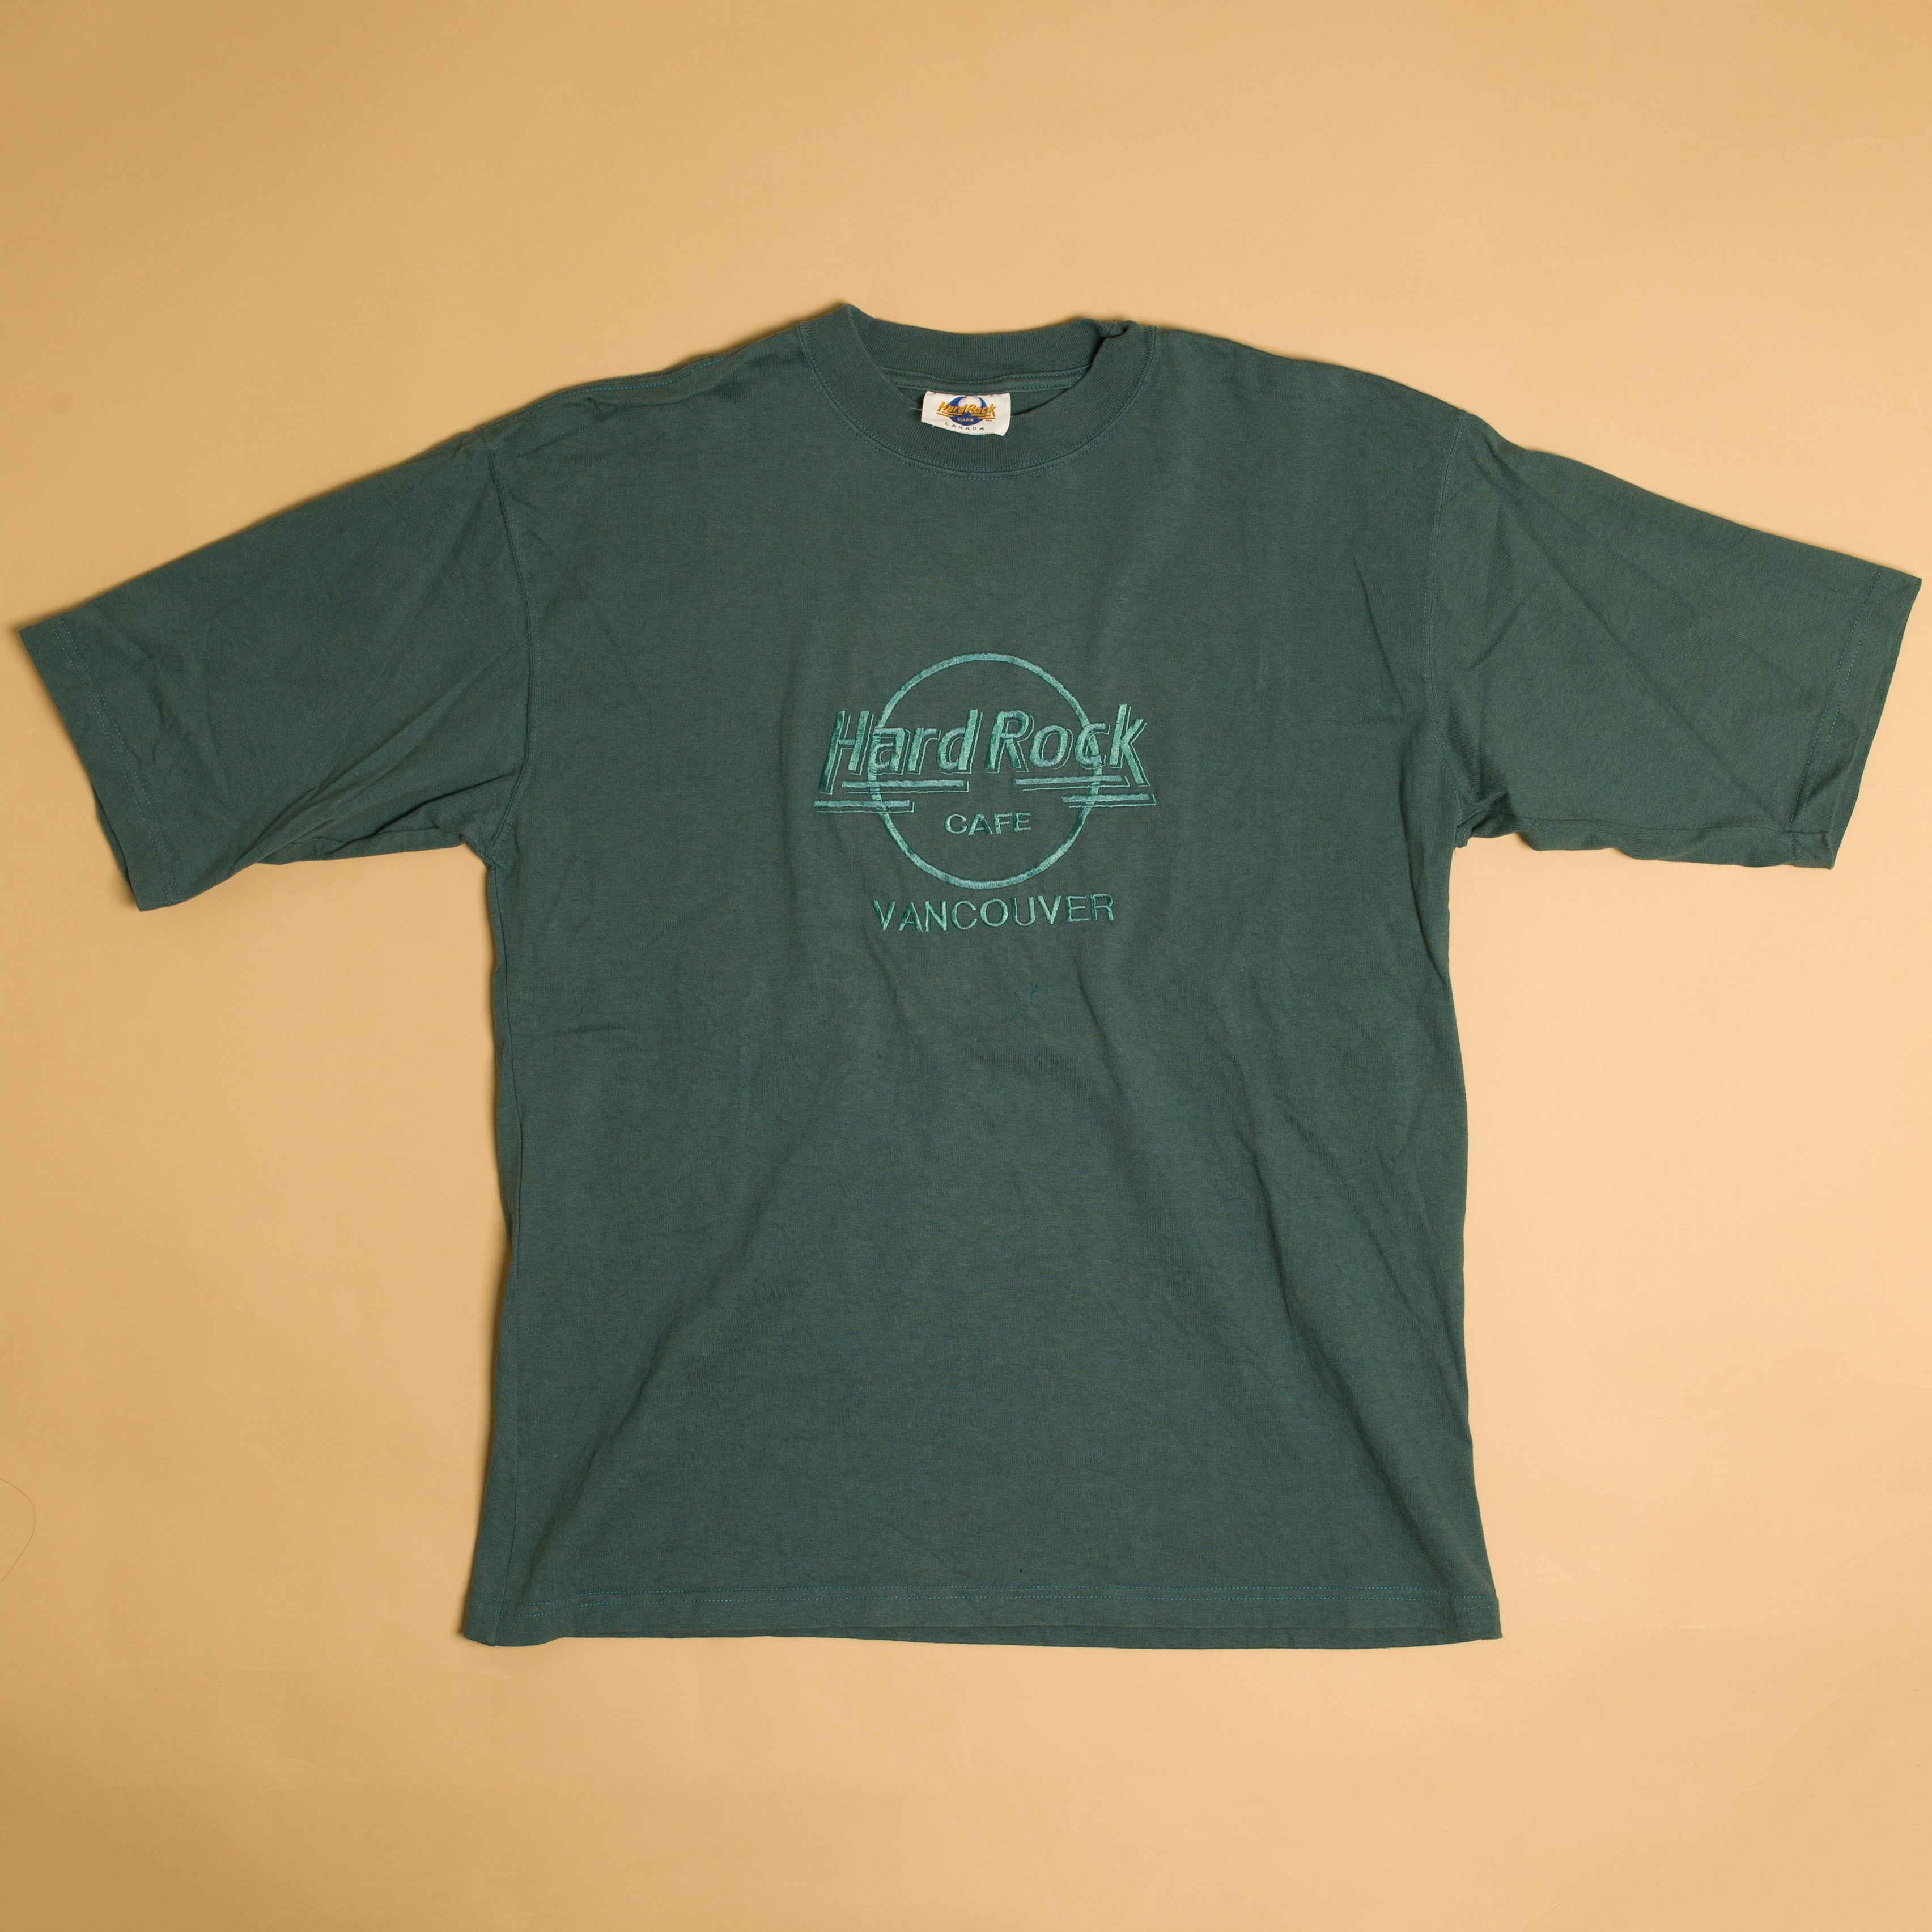 Vintage 90's Hard Rock Cafe Vancouver Canada T-Shirt